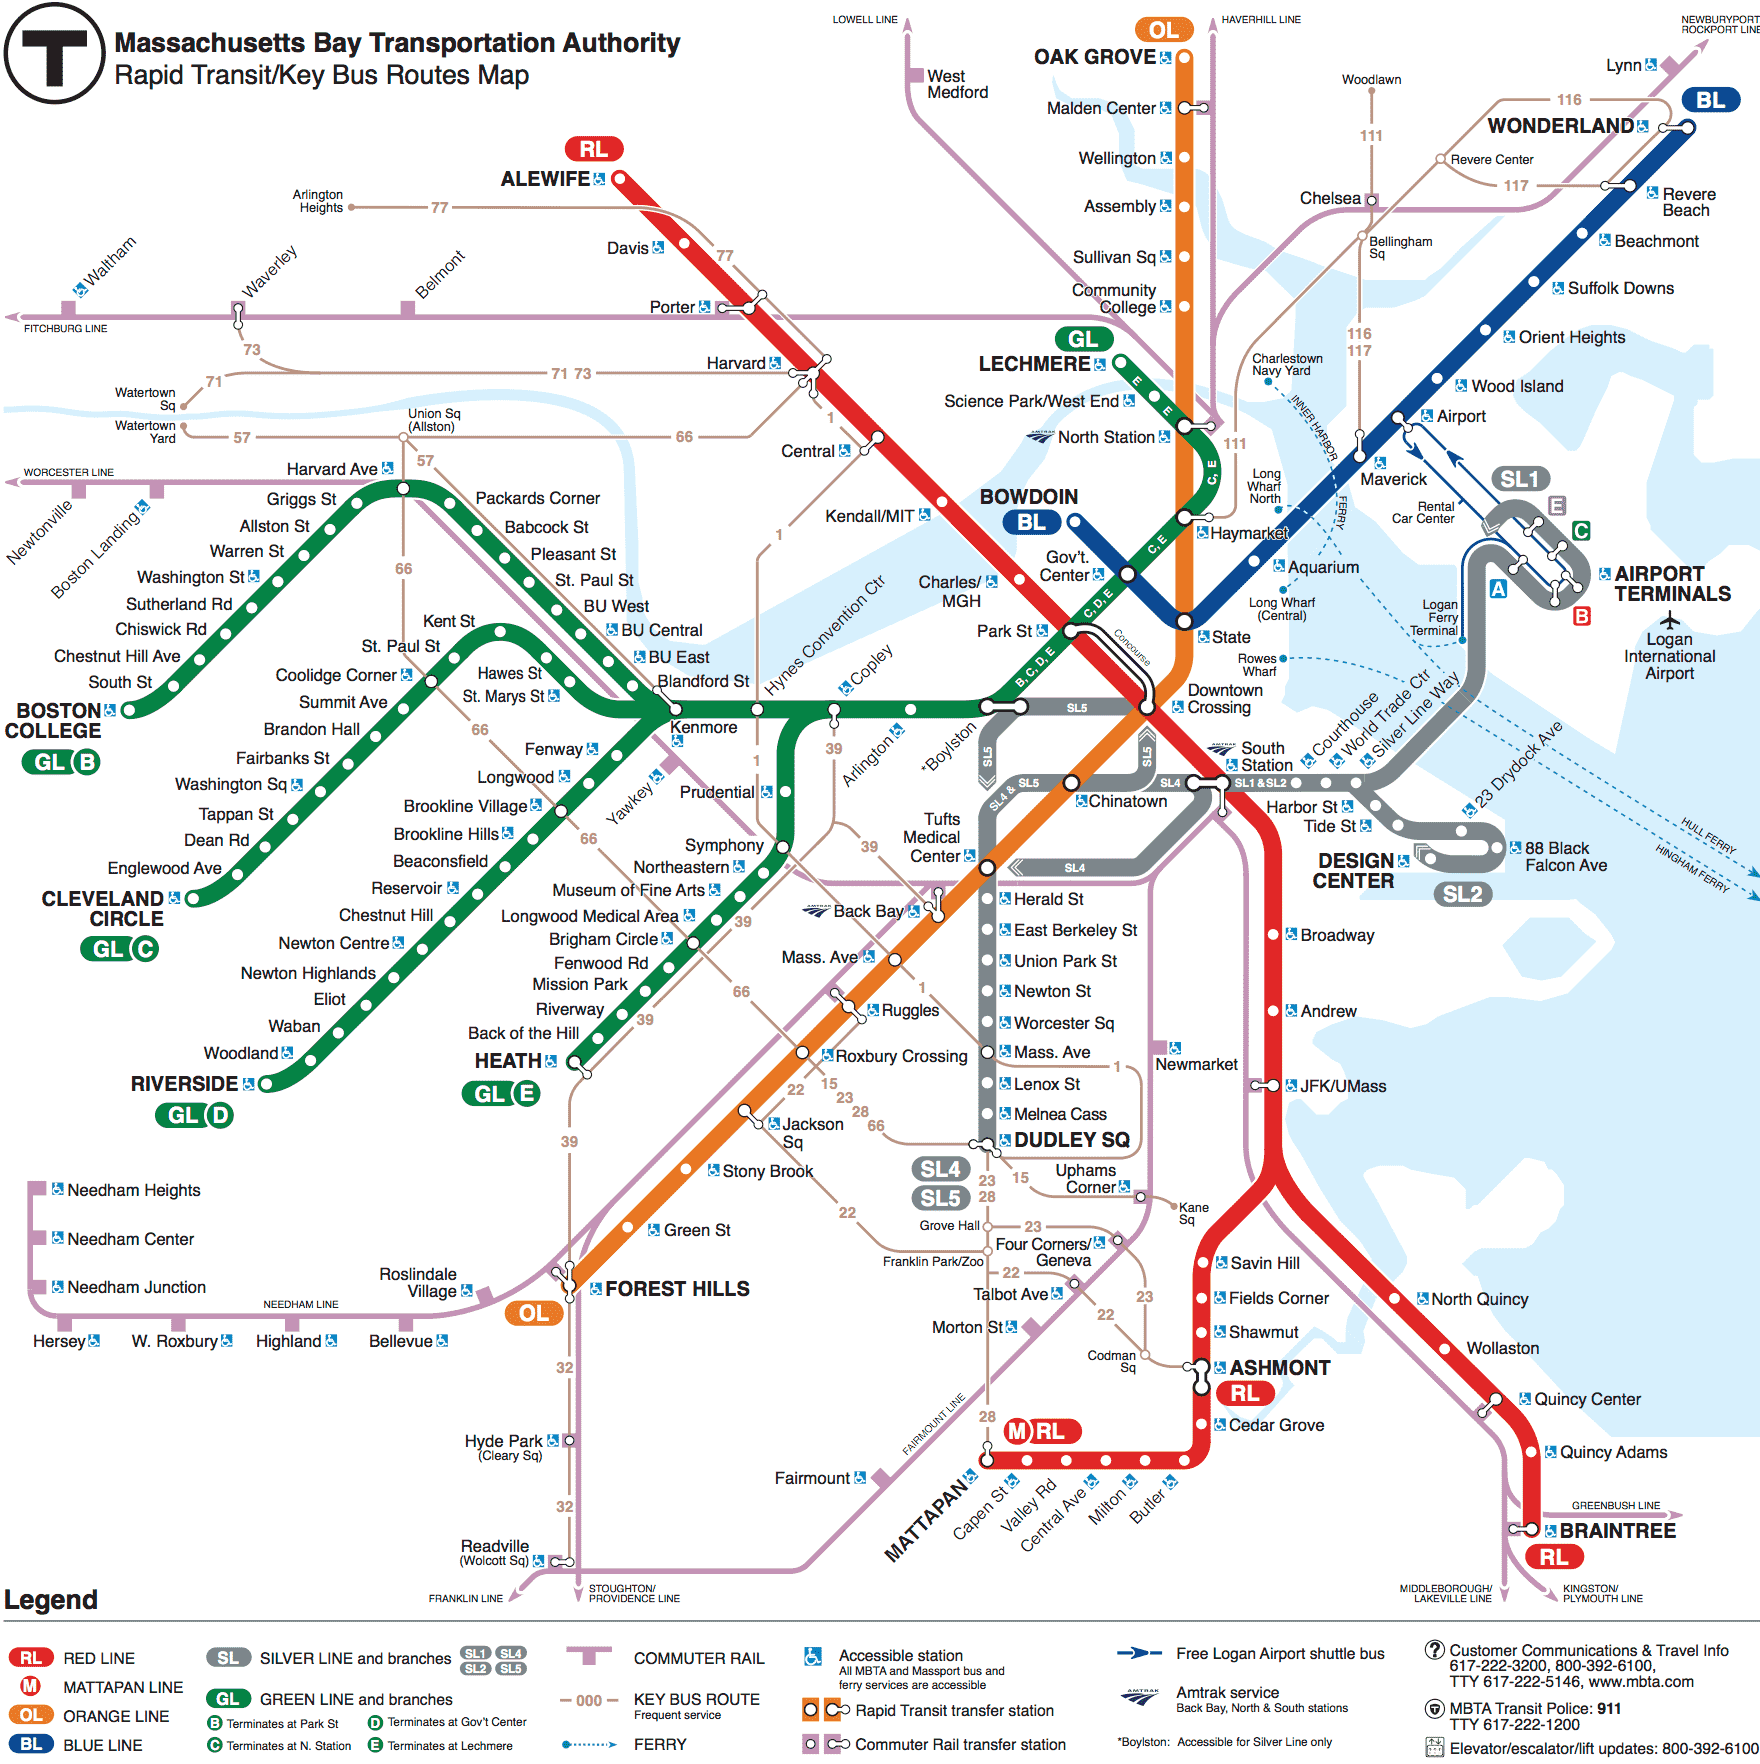 Subway Schedules Maps MBTA Massachusetts Bay - Amtrak map usa